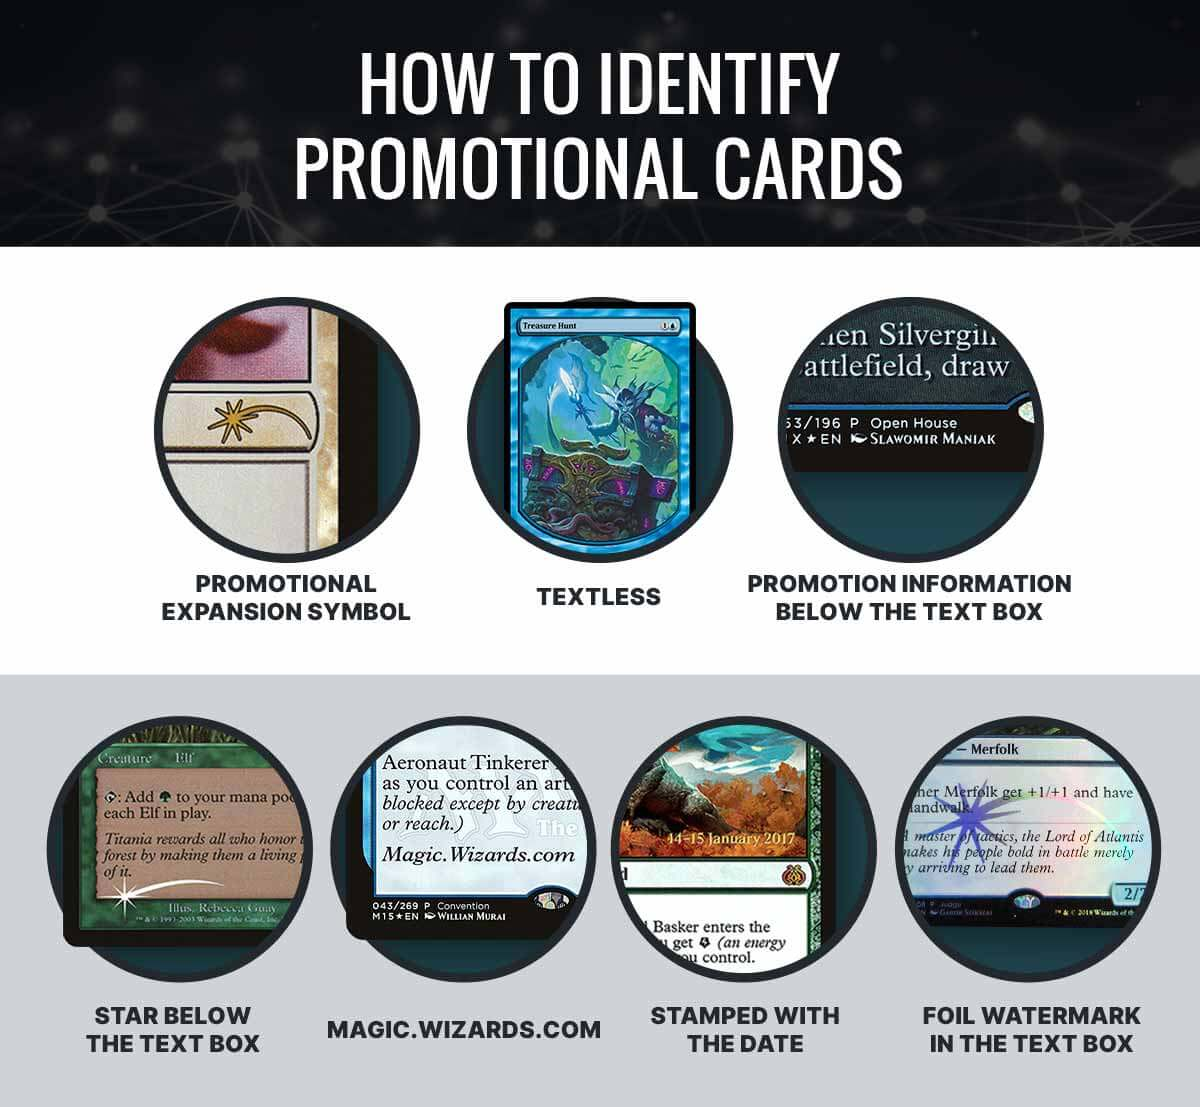 how-to-id-promo-cards_2x.jpg